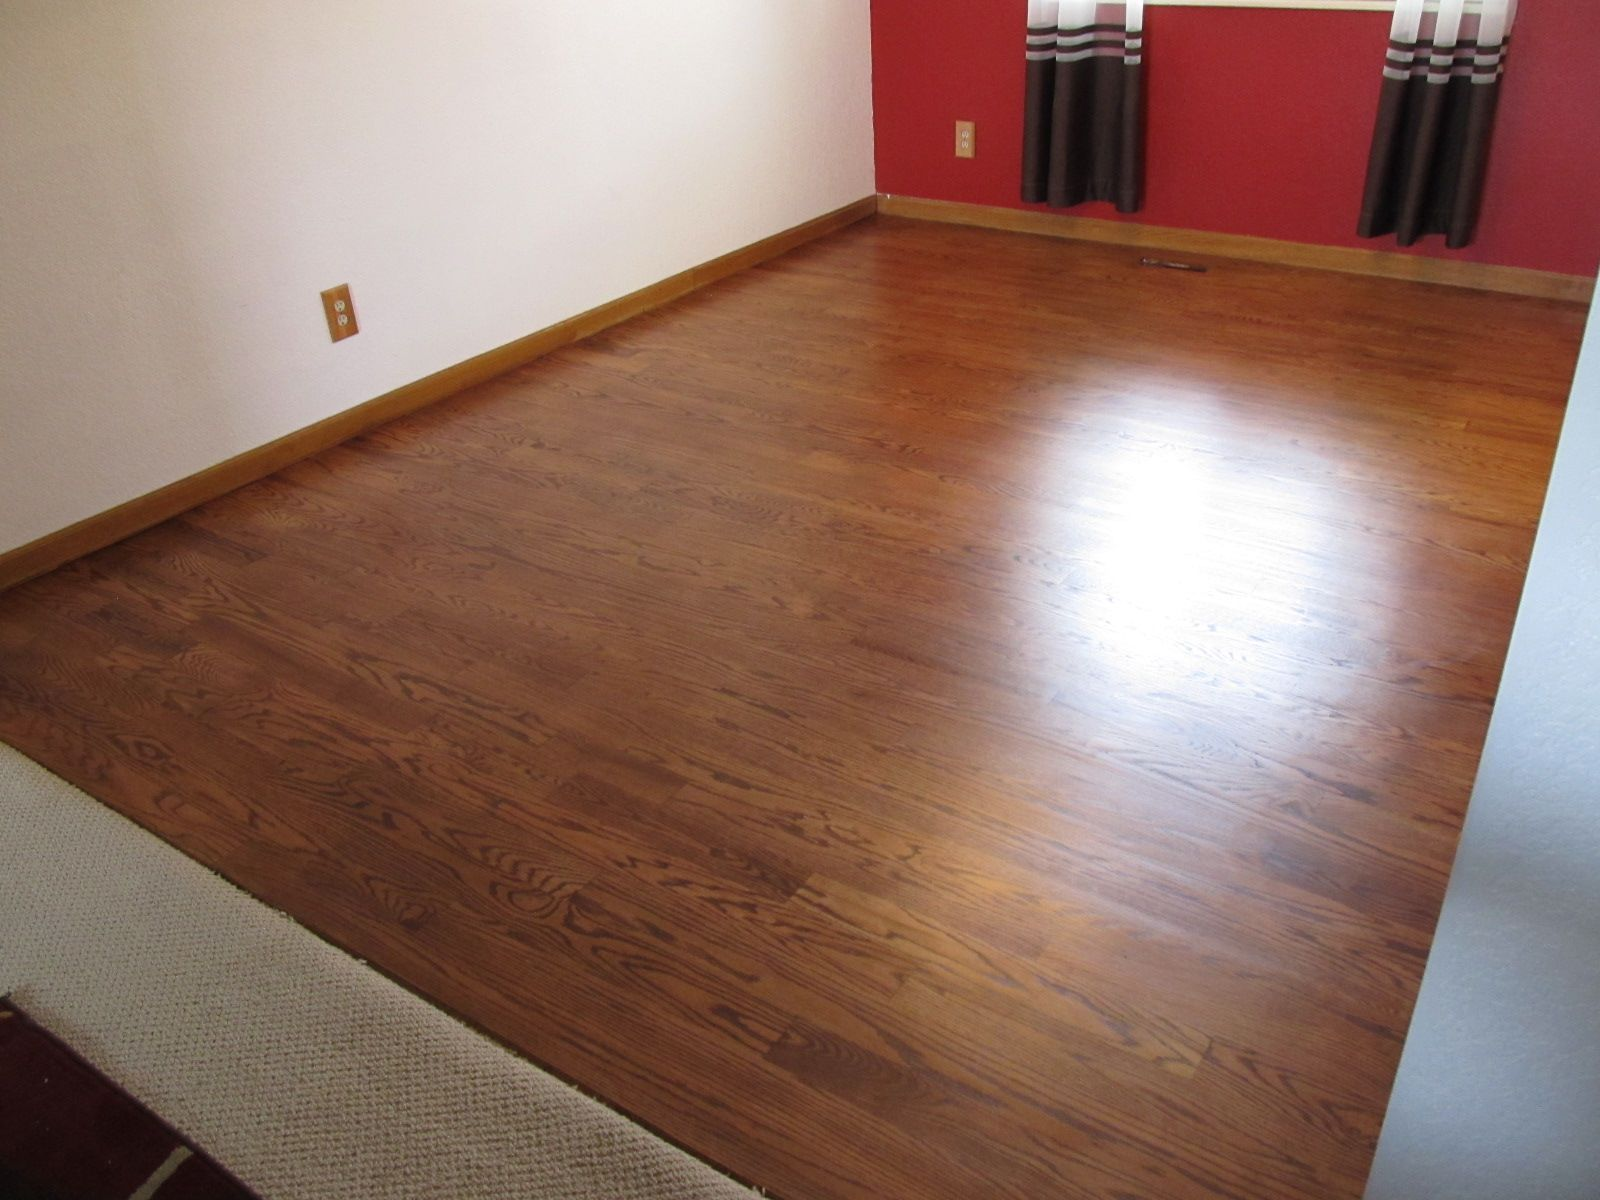 Dura Seal English Chestnut Finish Randy Hardwood Floor